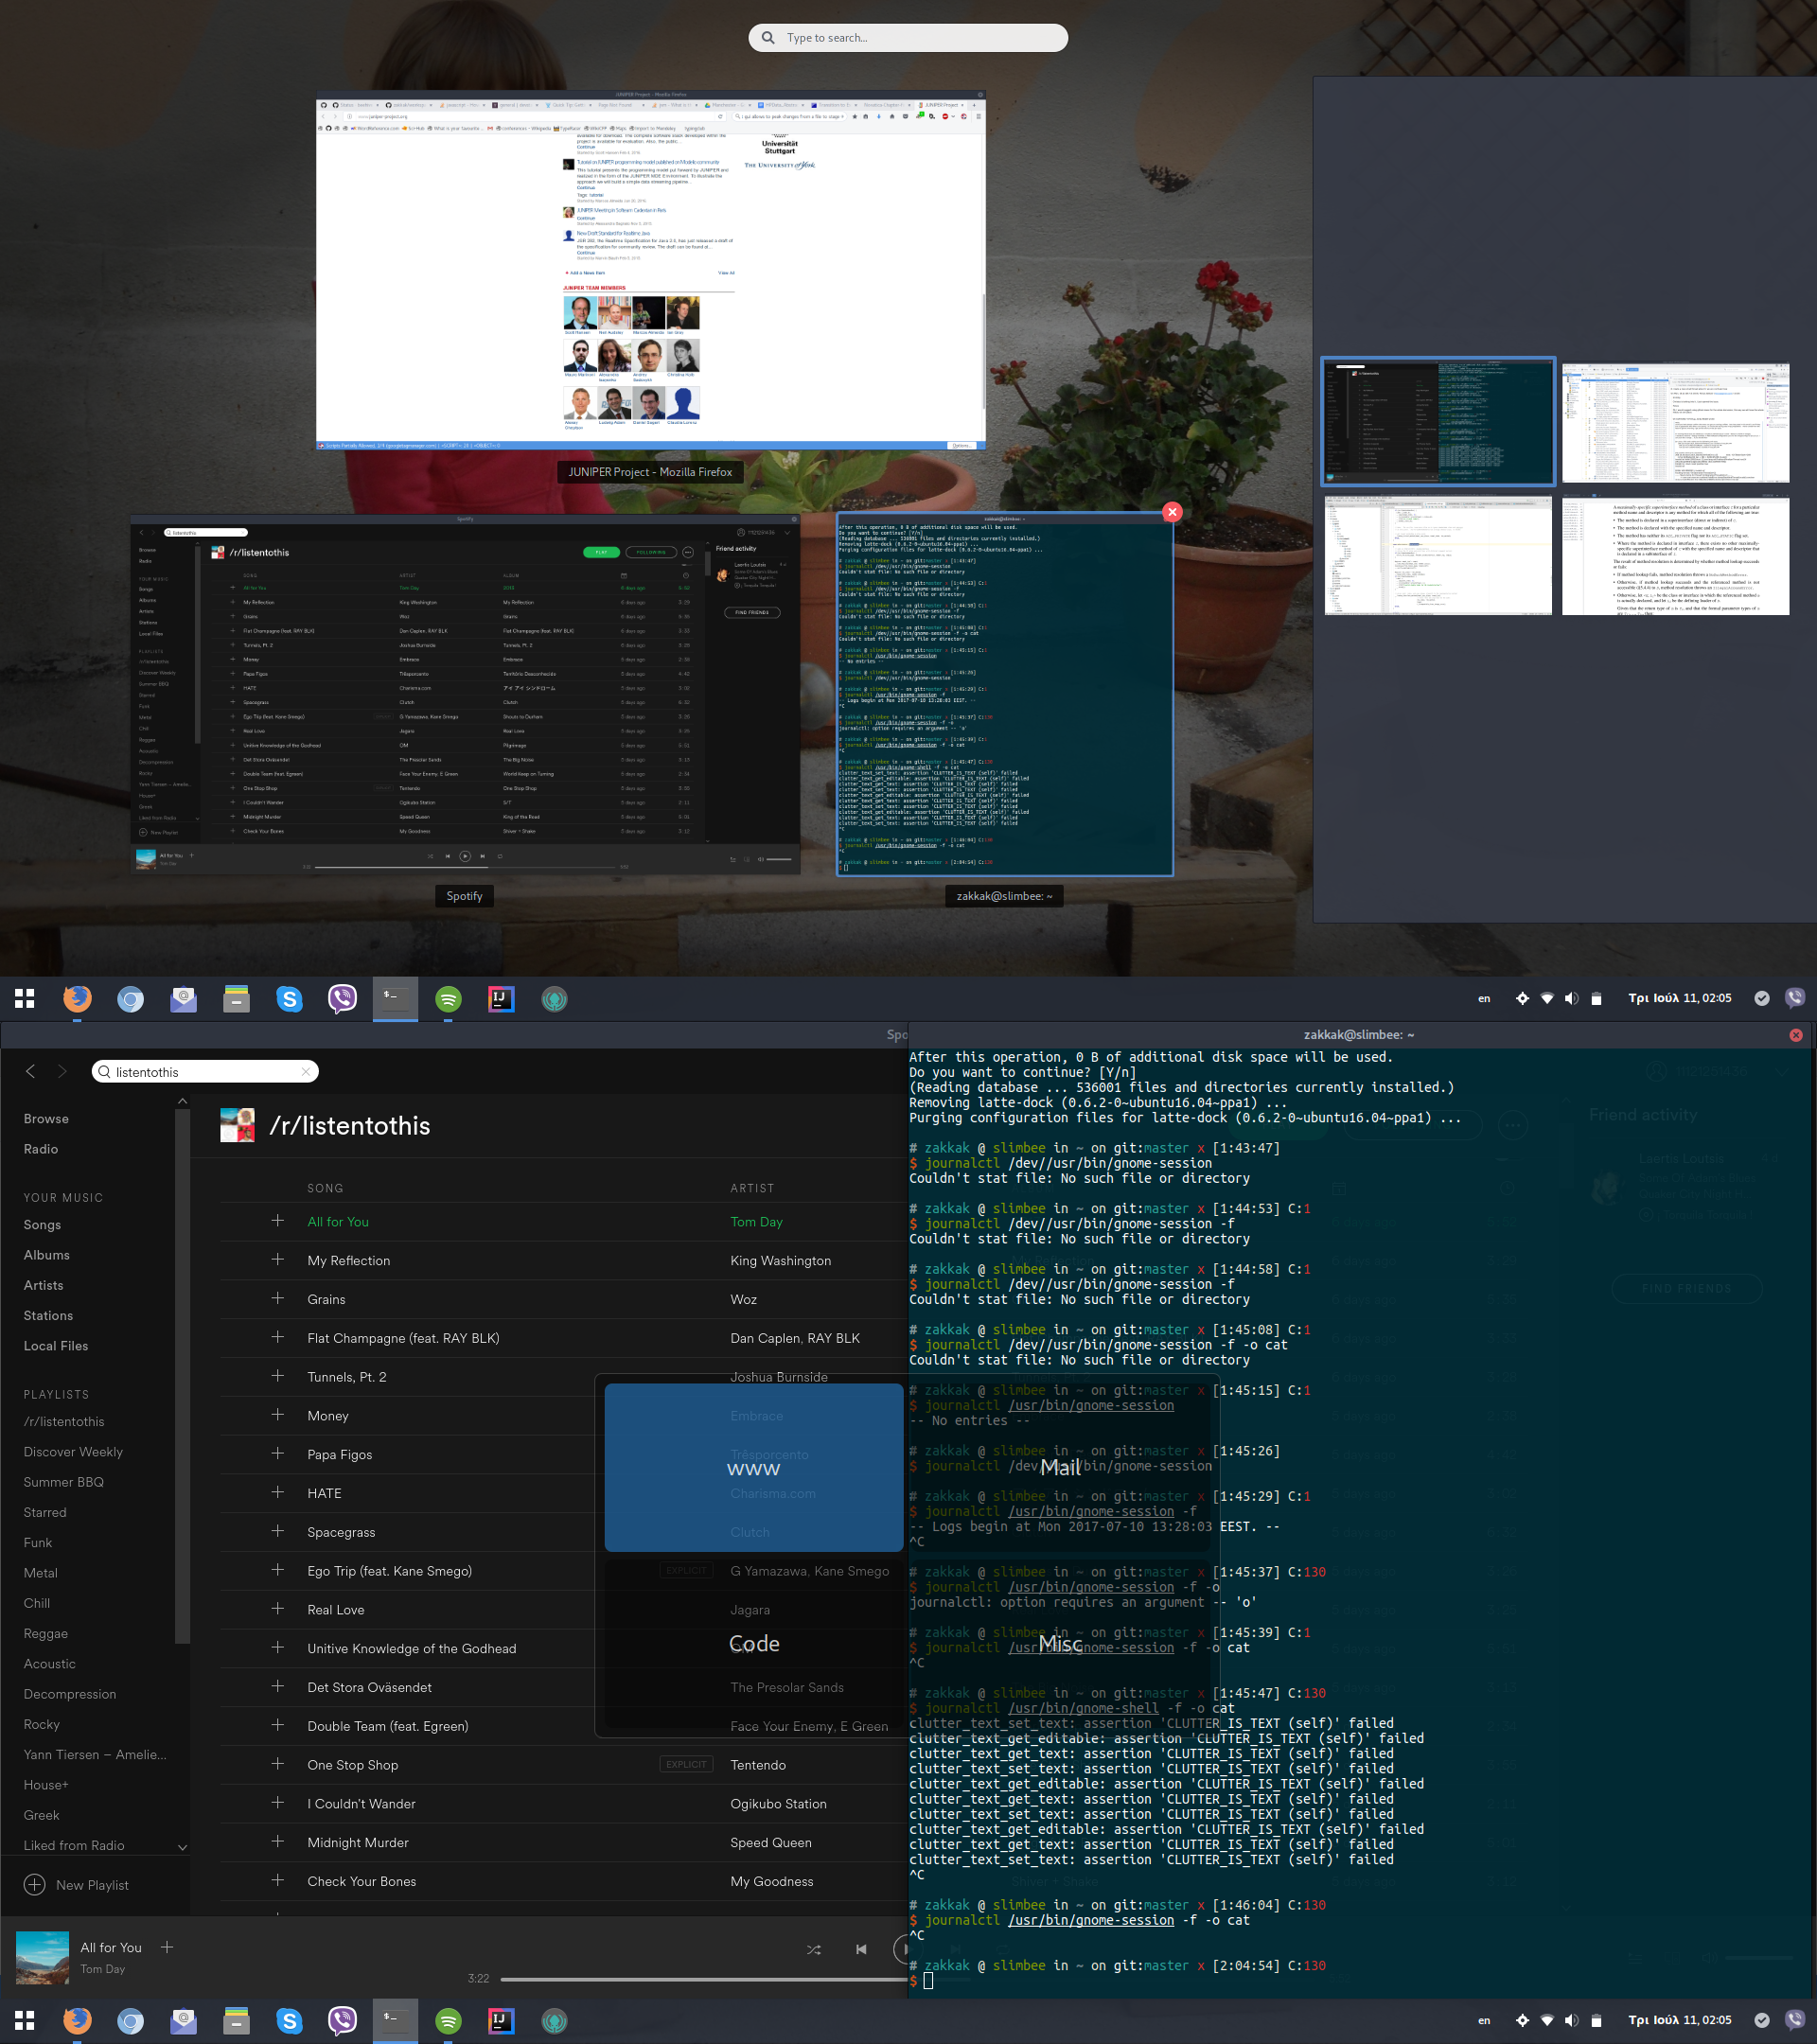 Also Implements Keybindings For Left Right Workspace Navigation Up Down Are Already Implemented Updates Workspaces Sidebar With Grid Configuration